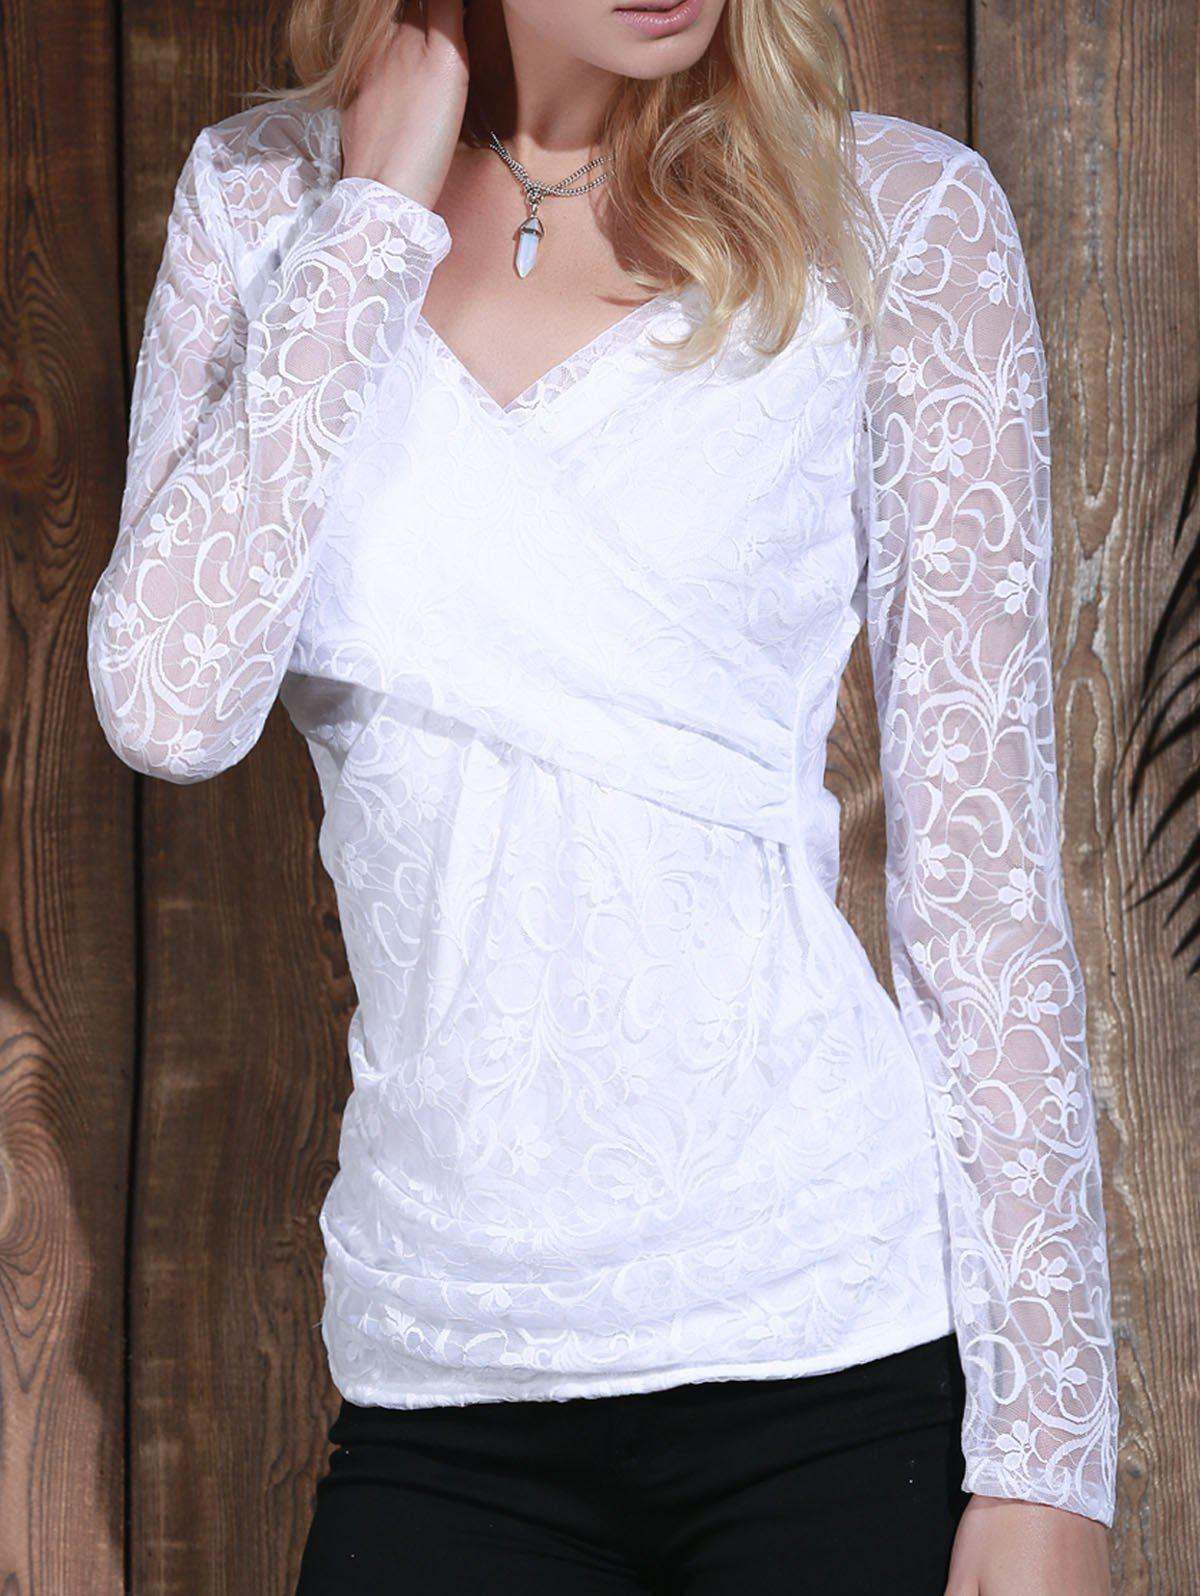 Long Sleeve Plunging Neck See-Through Lace Women's T-Shirt - S WHITE